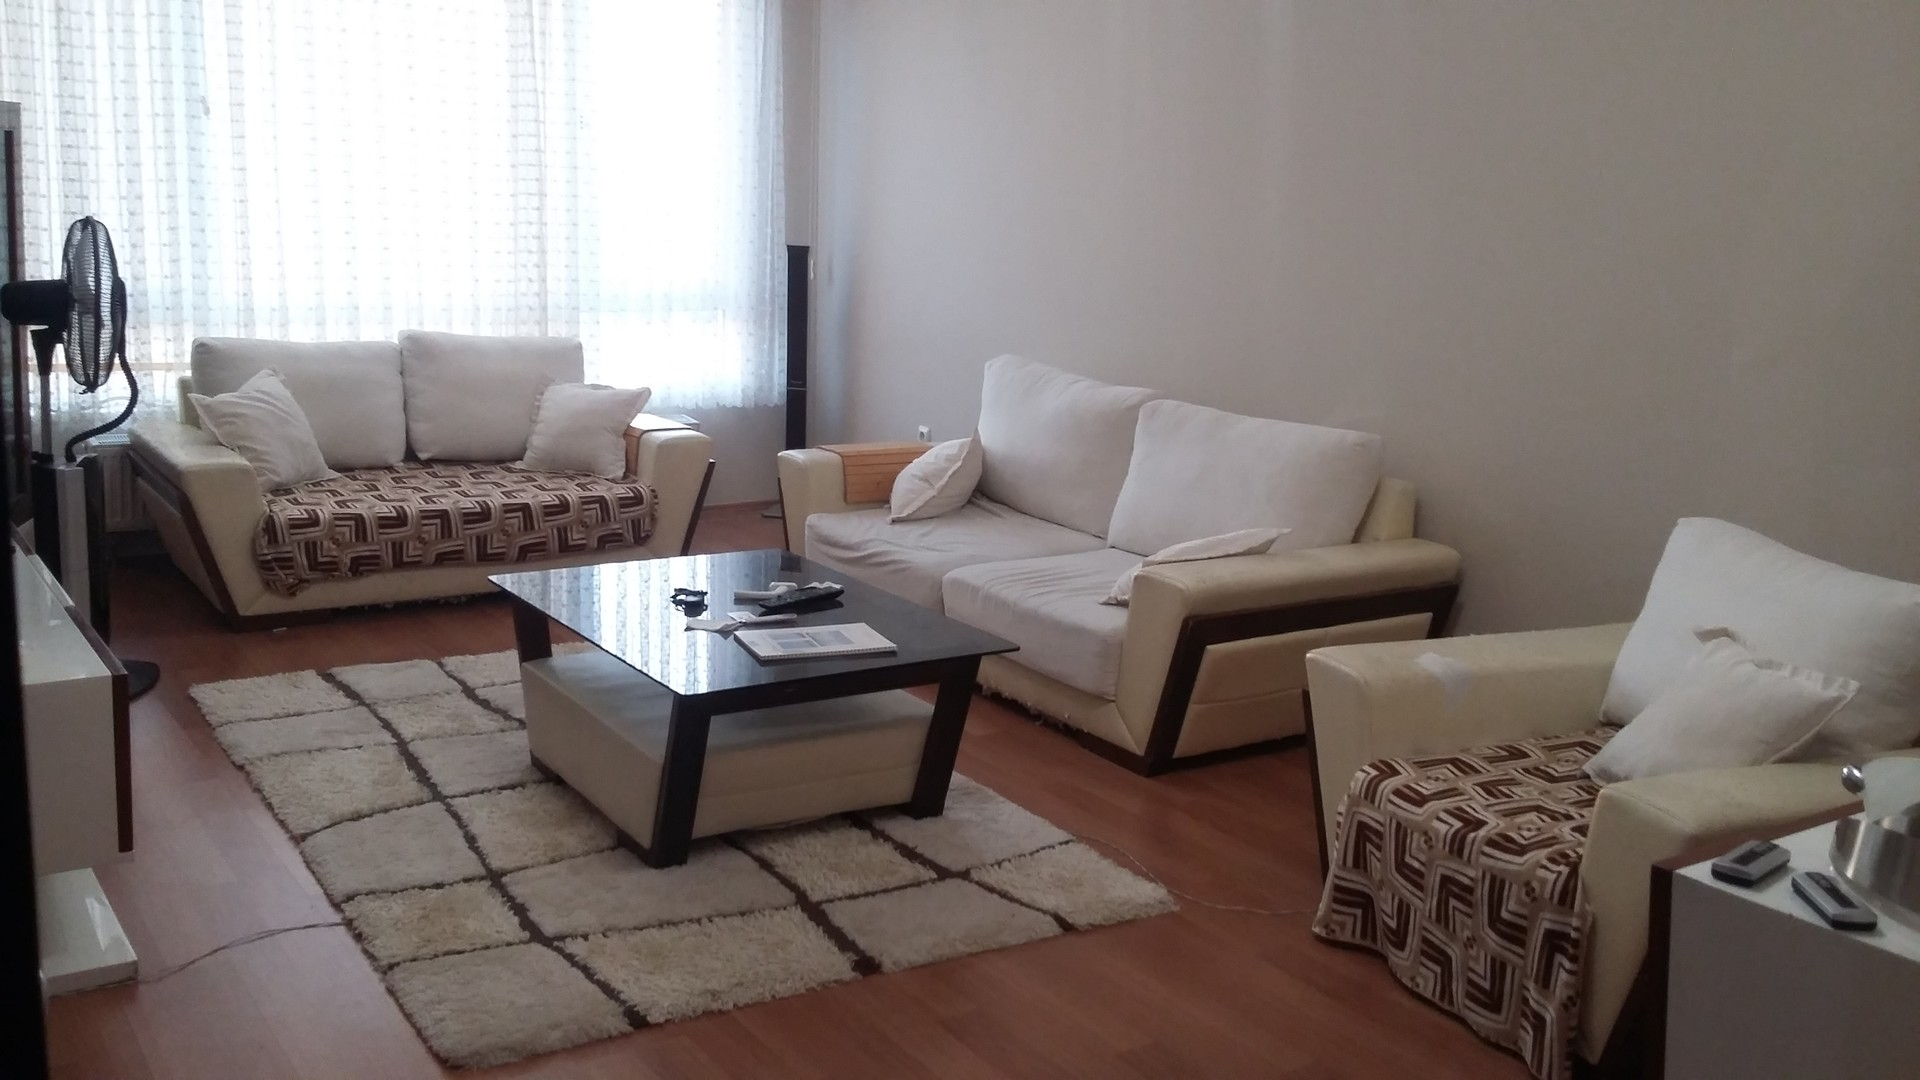 flatmate for parkvadi valley houses most popular place of ankara